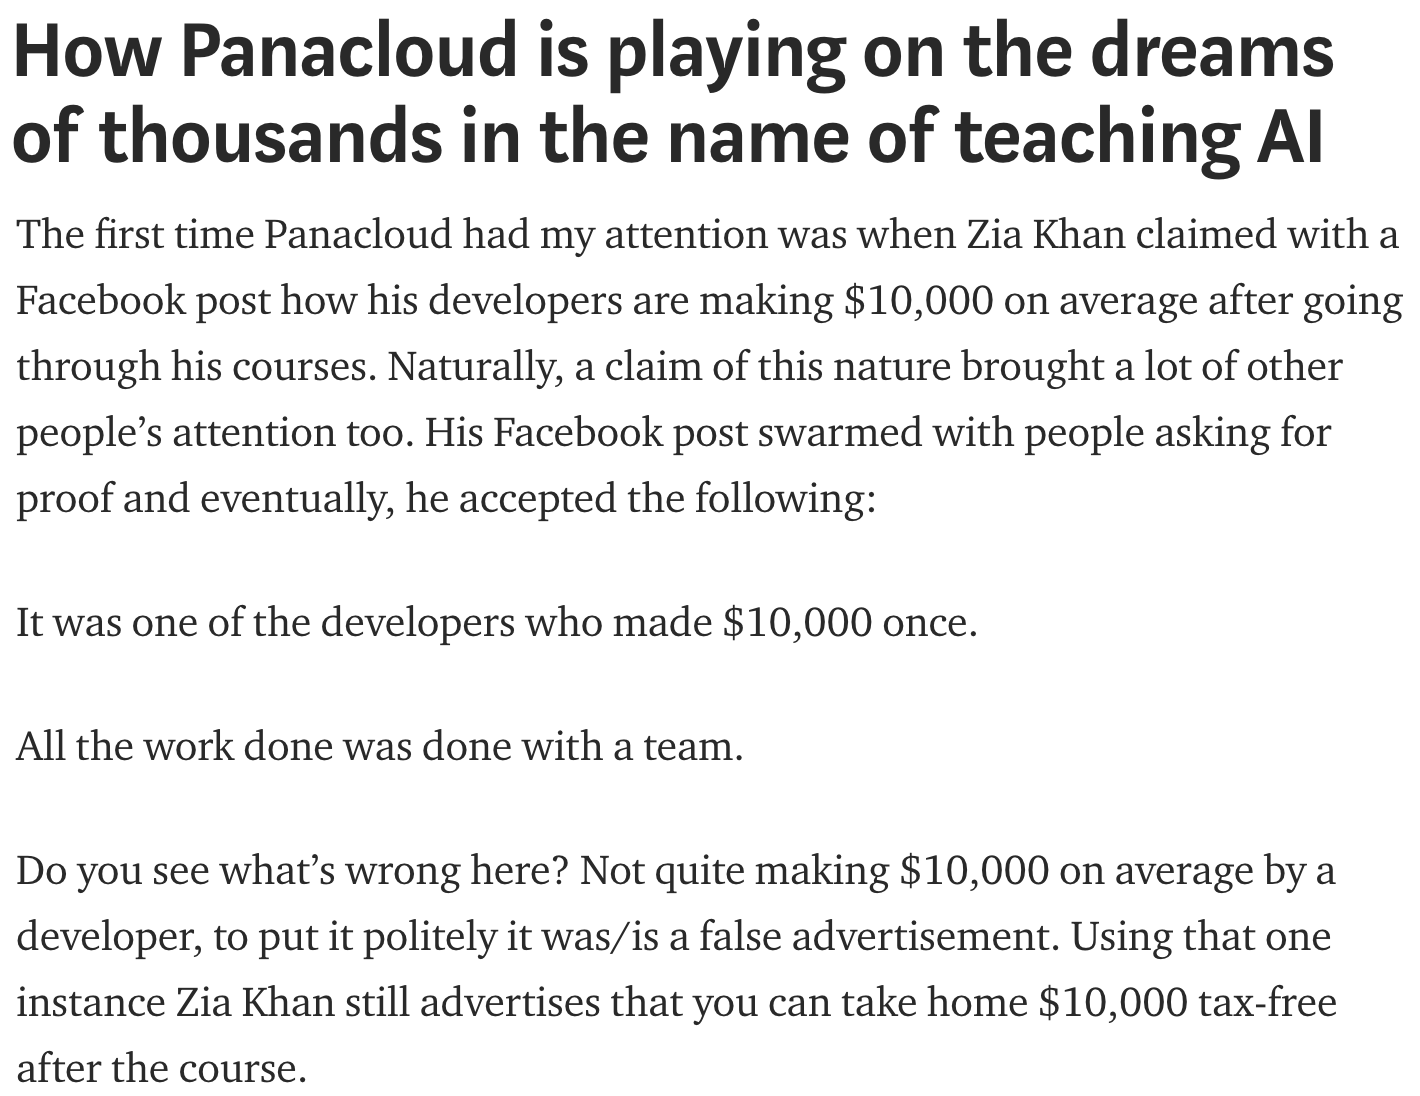 """Rebuttal of """"How Panacloud is playing on the dreams of"""